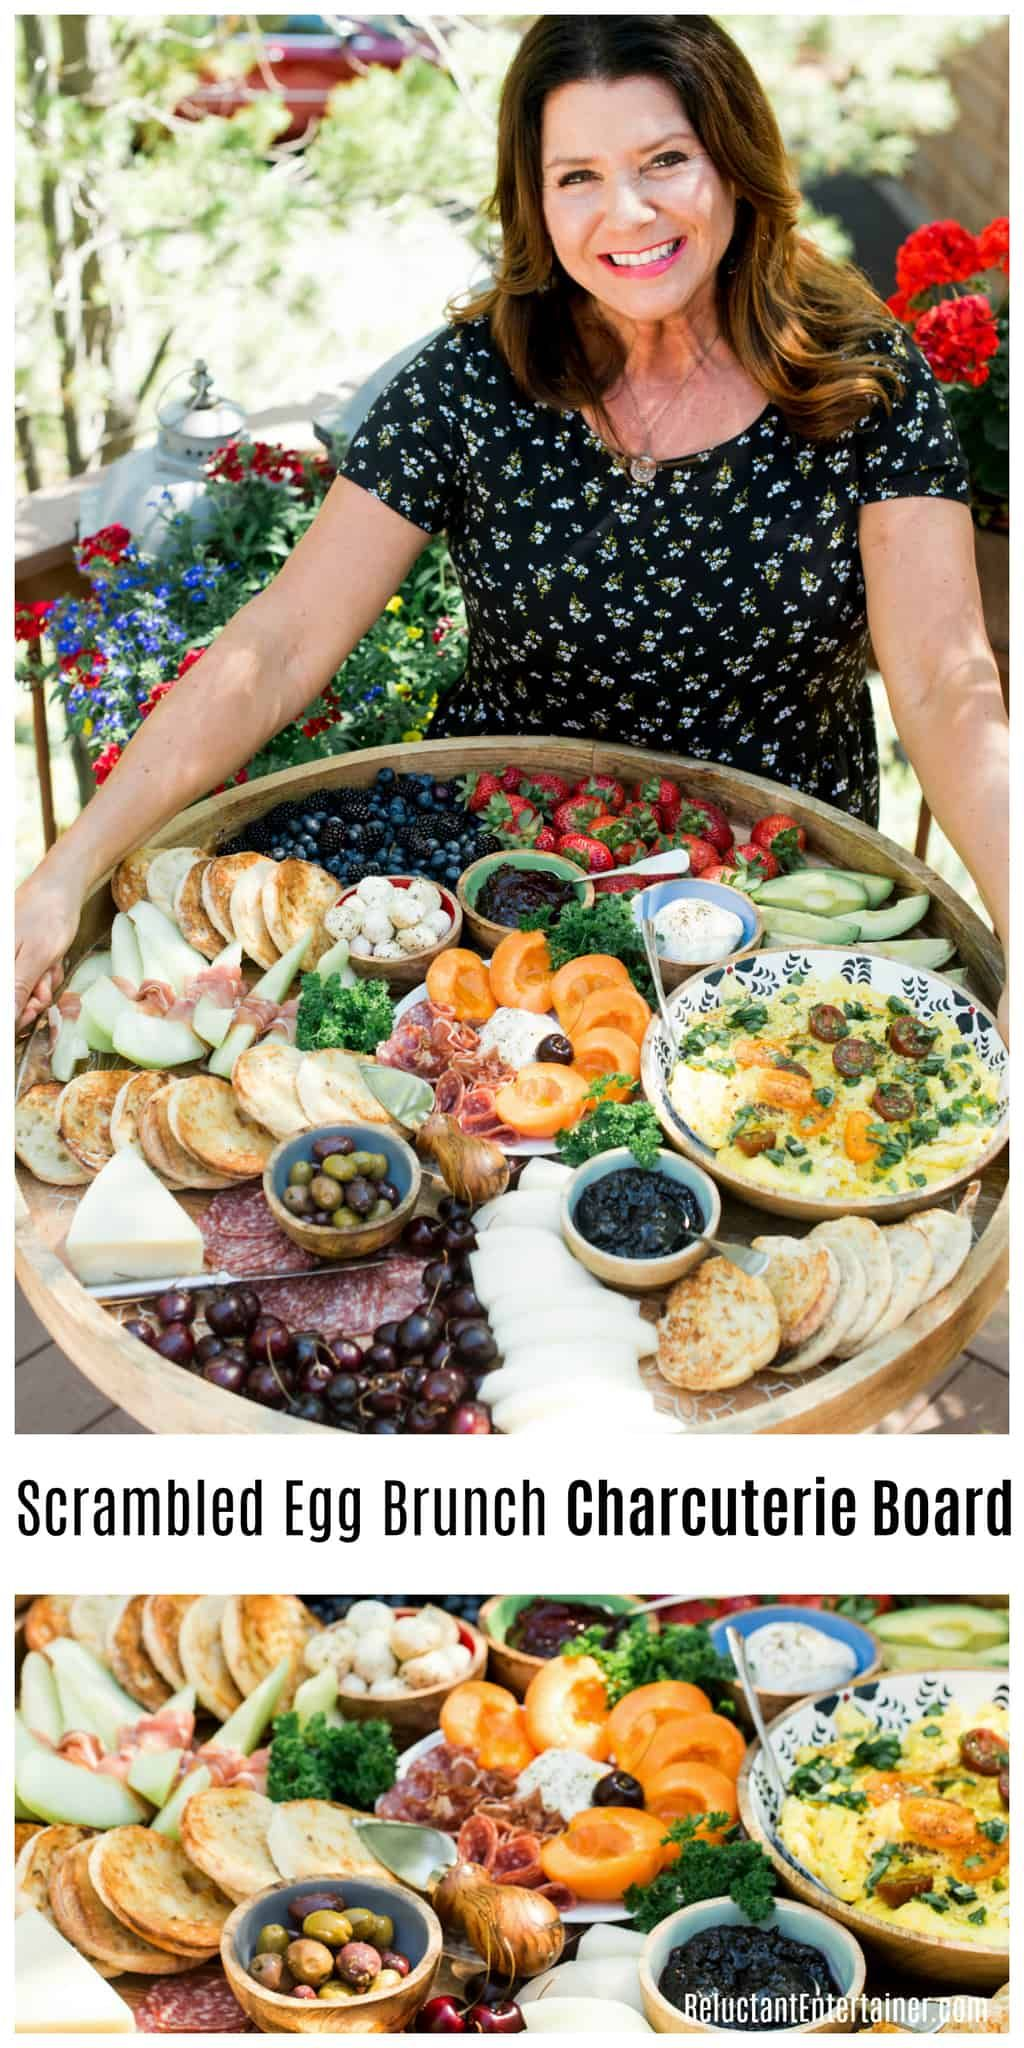 Scrambled Egg Brunch Charcuterie Board with fresh fruit, cheese, salami, scrambled eggs, and English muffins #breakfast #charcuterie #breakfastcharcuterie #brunch #brunchcharcuterie via @sandycoughlin #charcuterieboard